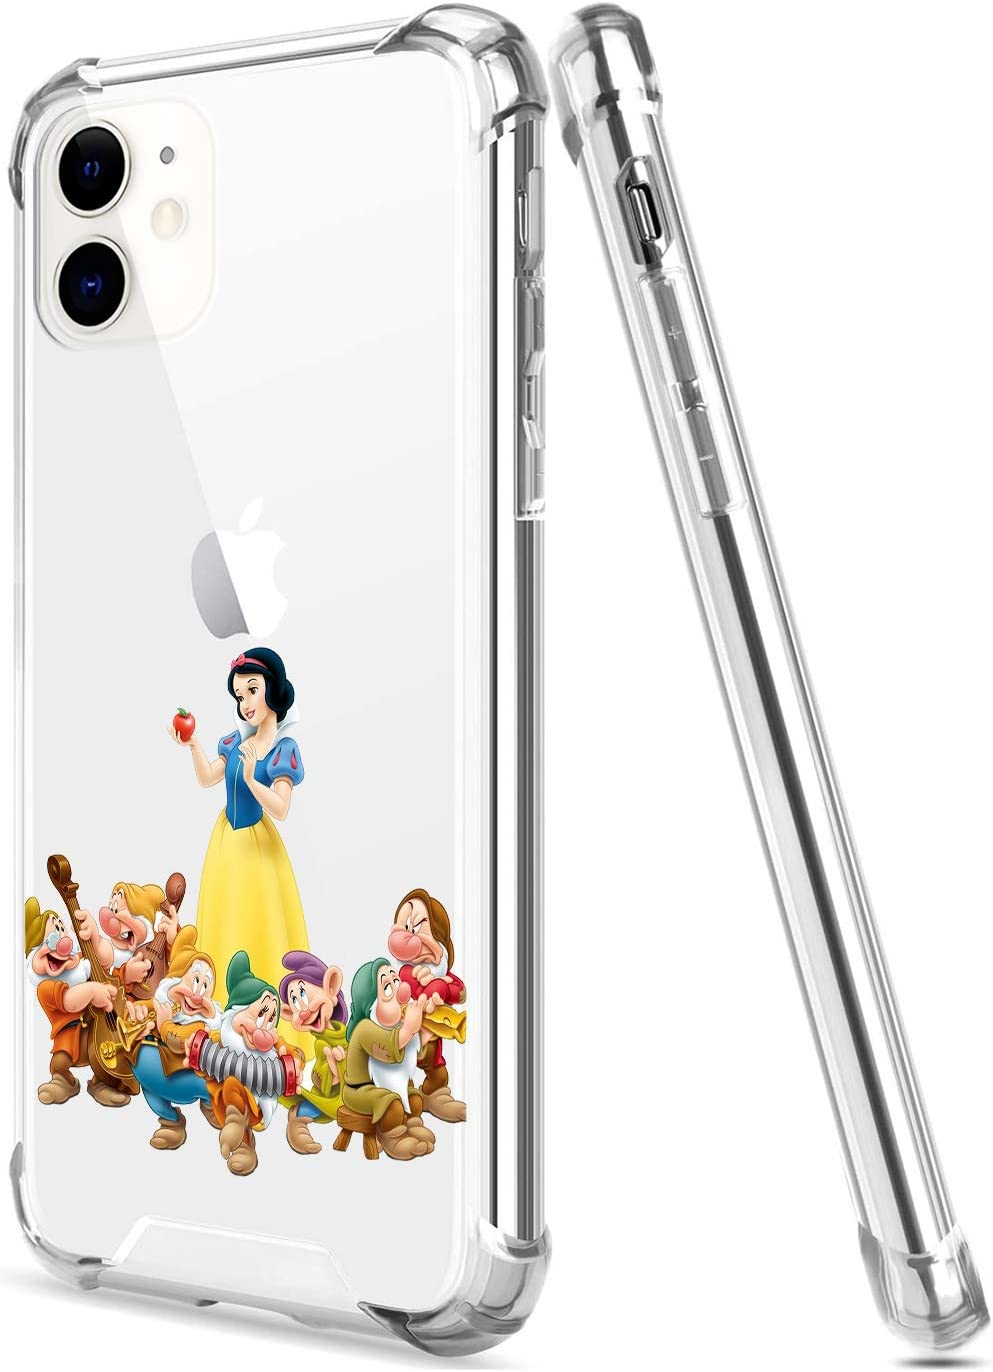 Crystal Clear iPhone 11 Case with 4 Corners Shockproof Protection,Cute Cartoon Design Soft TPU Bumper and Anti-Scratch PC Back Protective Cover Cases for Men and Women (Snow-White-7Dwarfs)